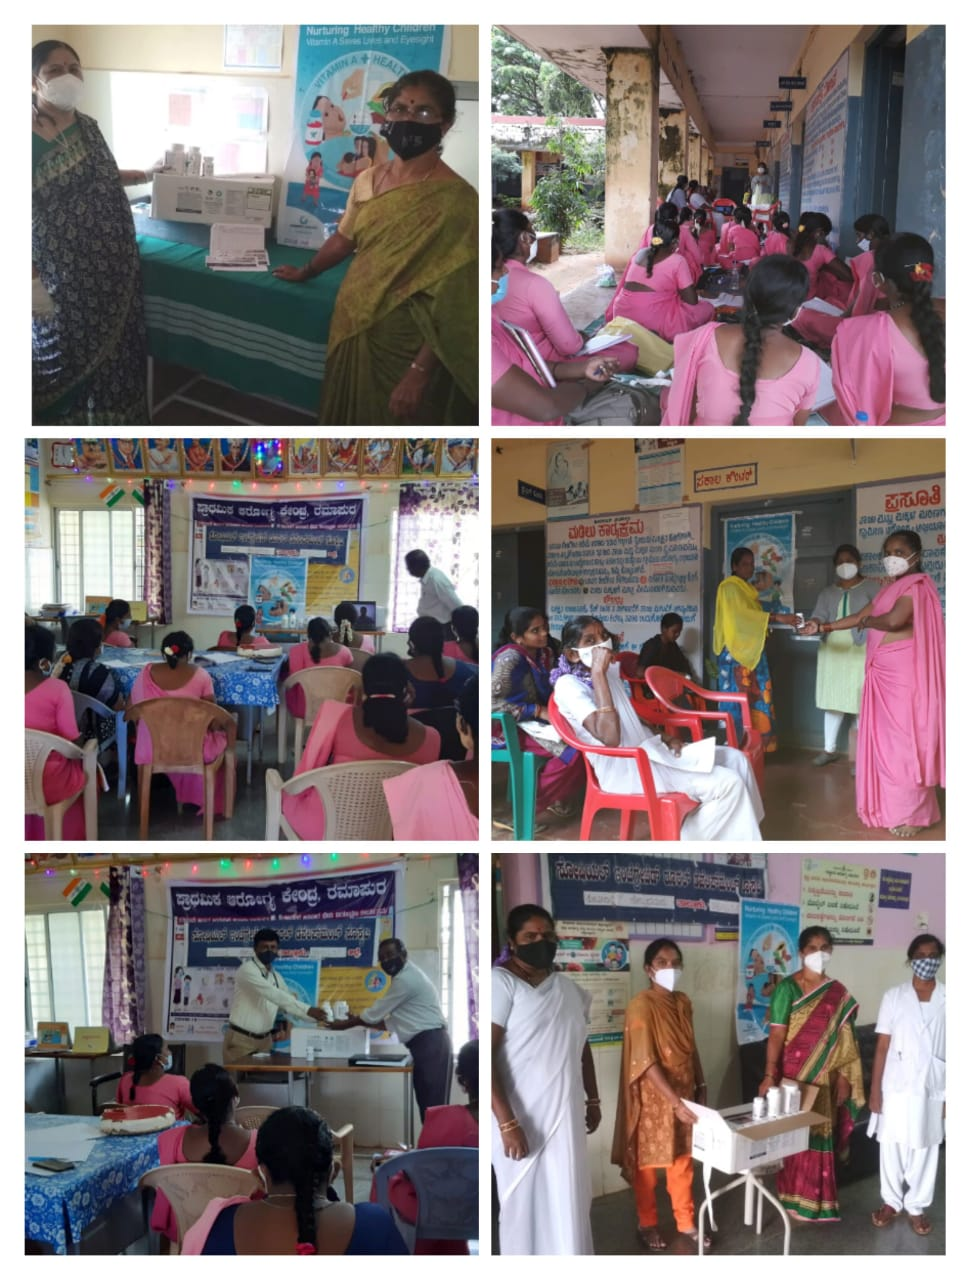 /media/sirds/1NGO-00222-SIRDS-About_Us_Page-Medicine_Distribution_at_Hospitals.jpeg